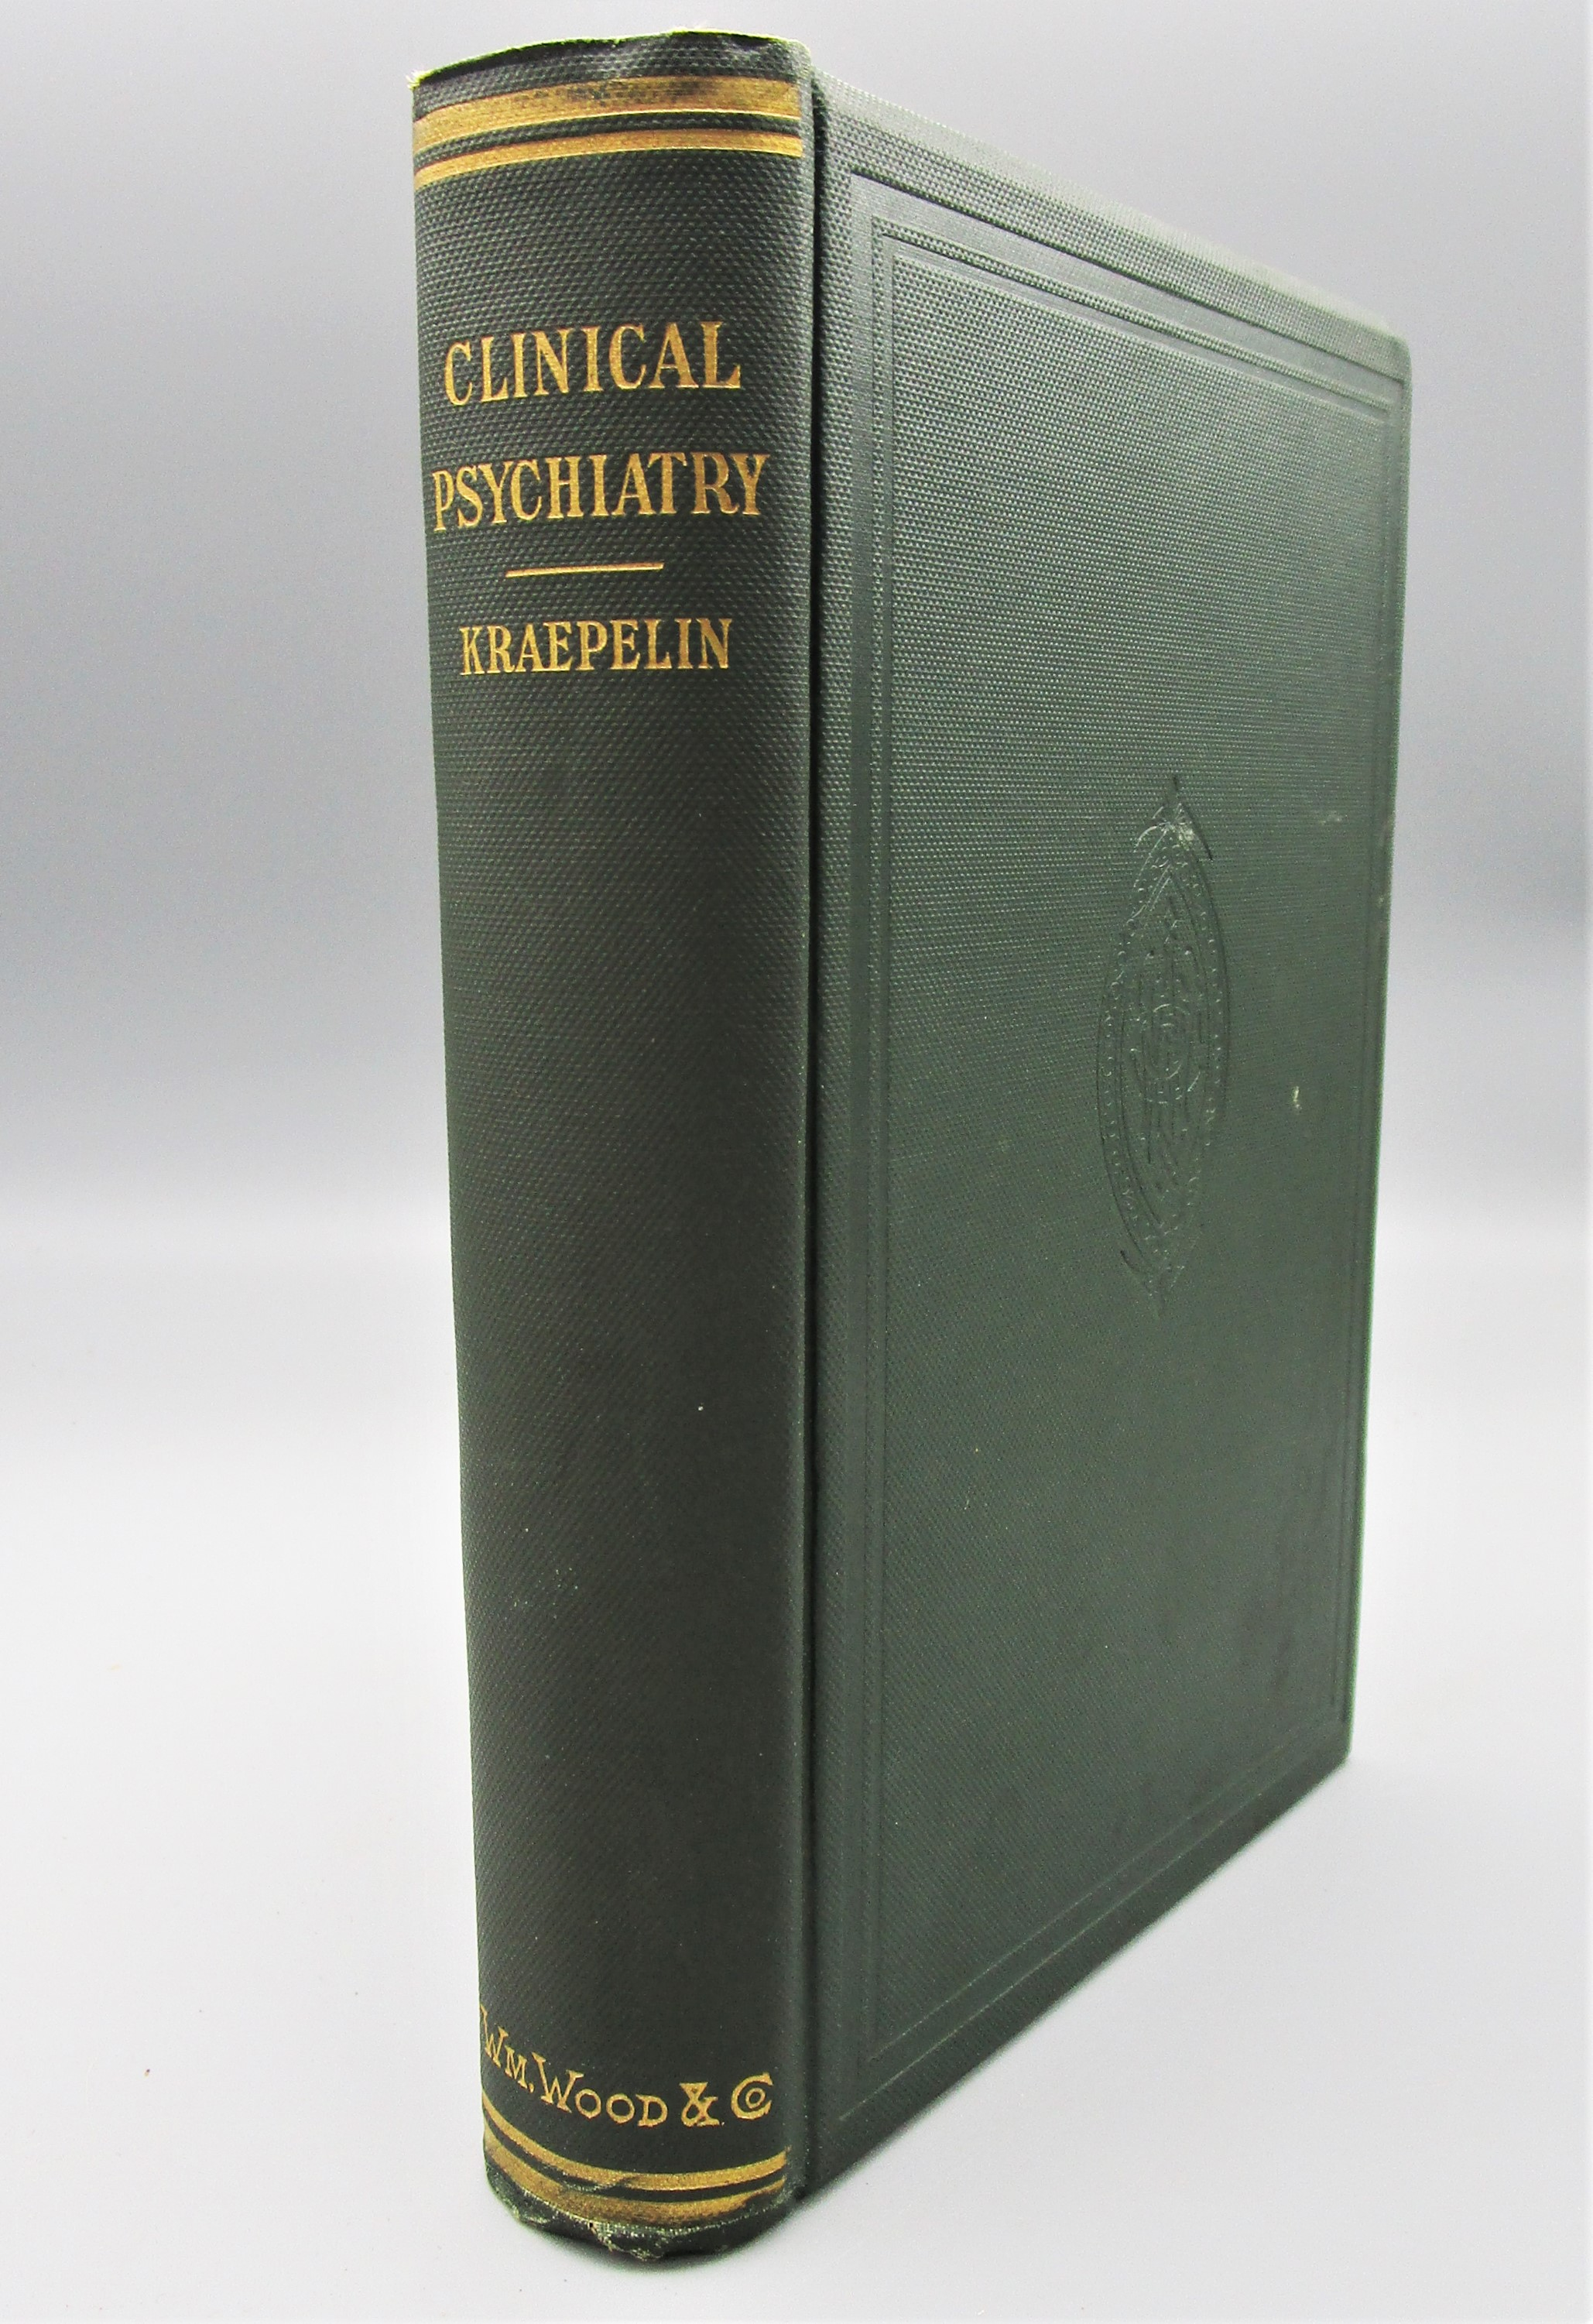 LECTURES ON CLINICAL PSYCHIATRY, by Dr. Emil Kraepelin - 1906